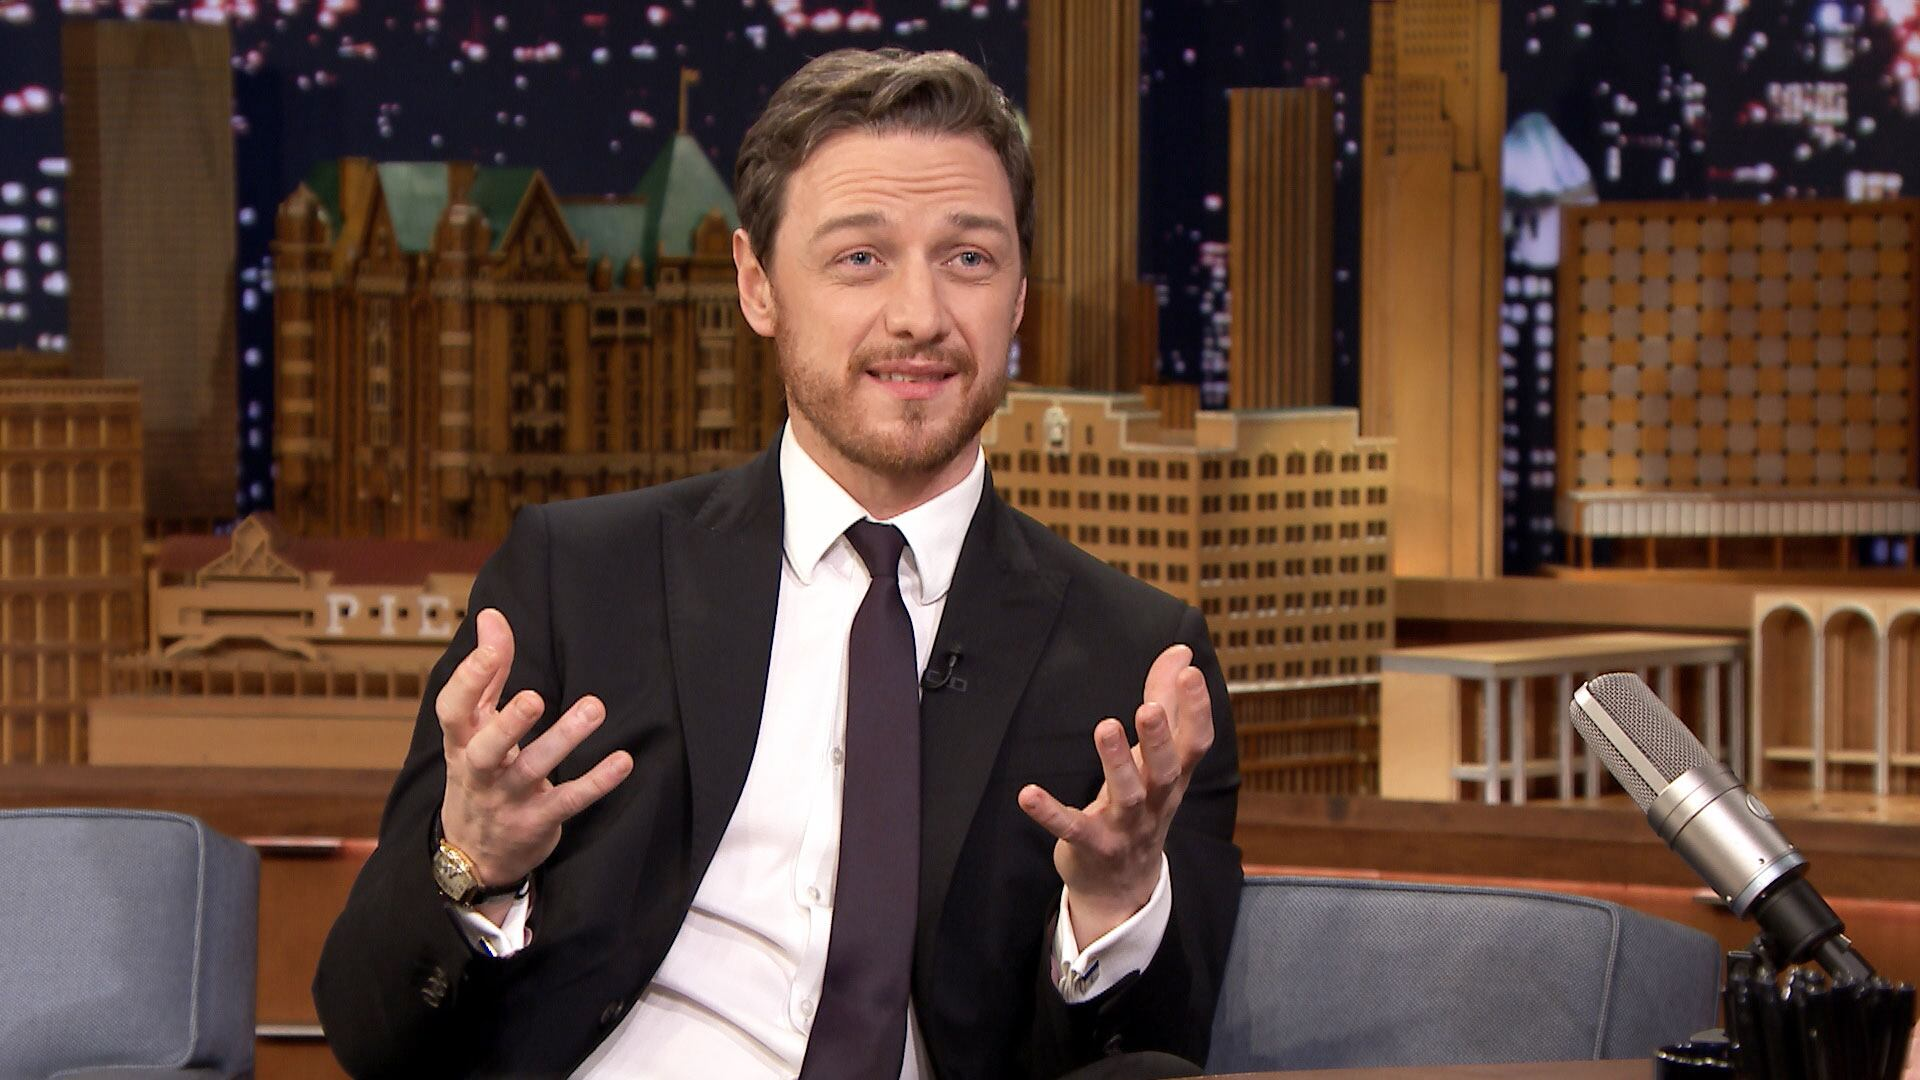 James McAvoy Portrays Nine Different Sides in Split